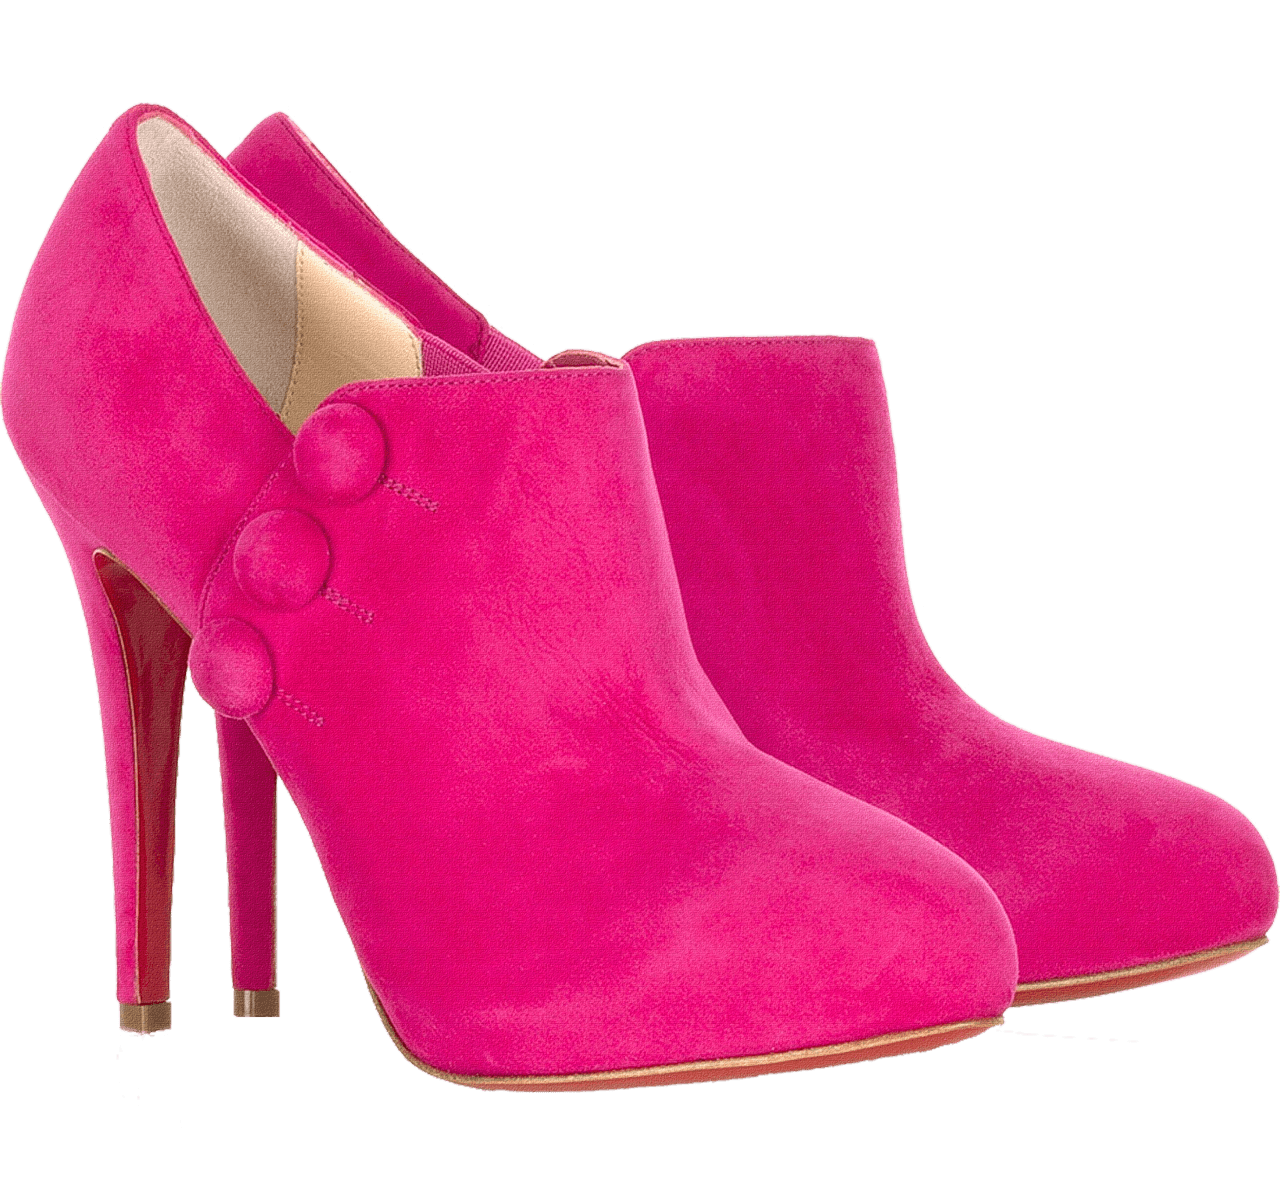 Women Shoes PNG File SVG Clip arts